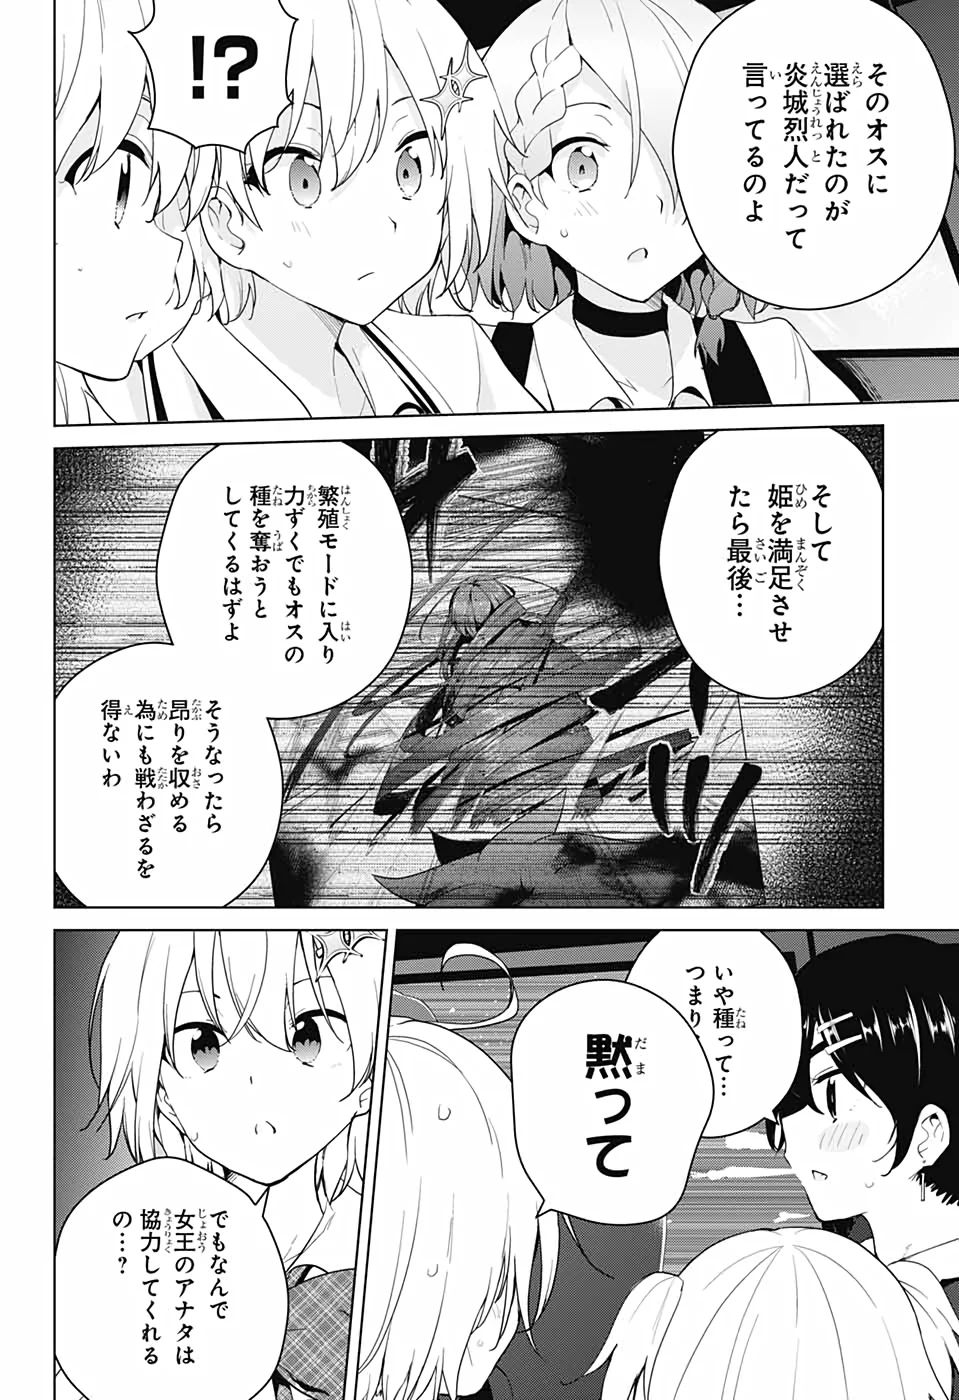 Manga Raw Dokyuu Hentai HxEros Chapter 54